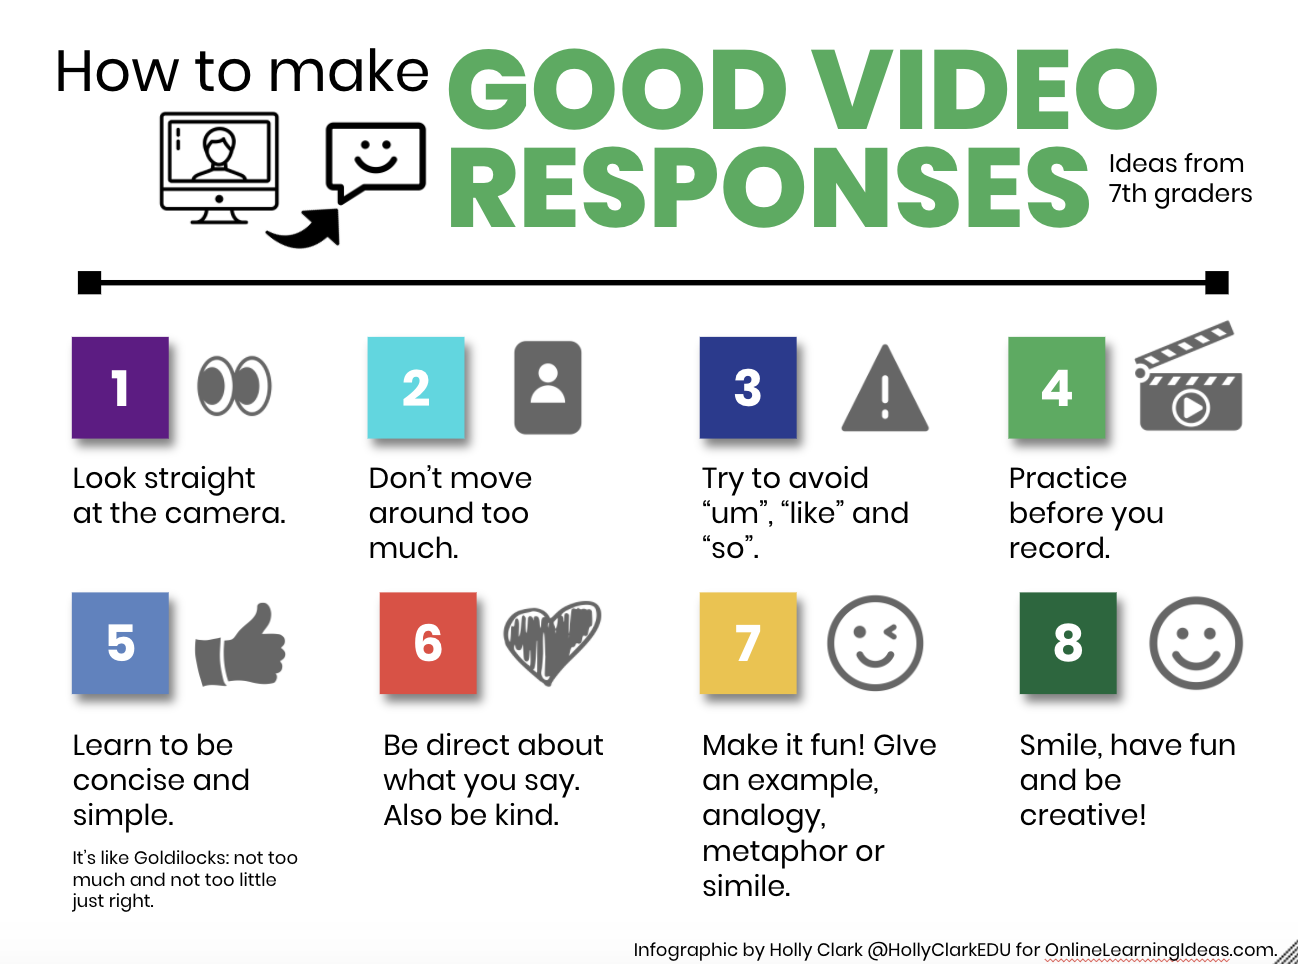 8 Tips for Creating Great Video Responses or Engaging Comments | The Infused Classroom